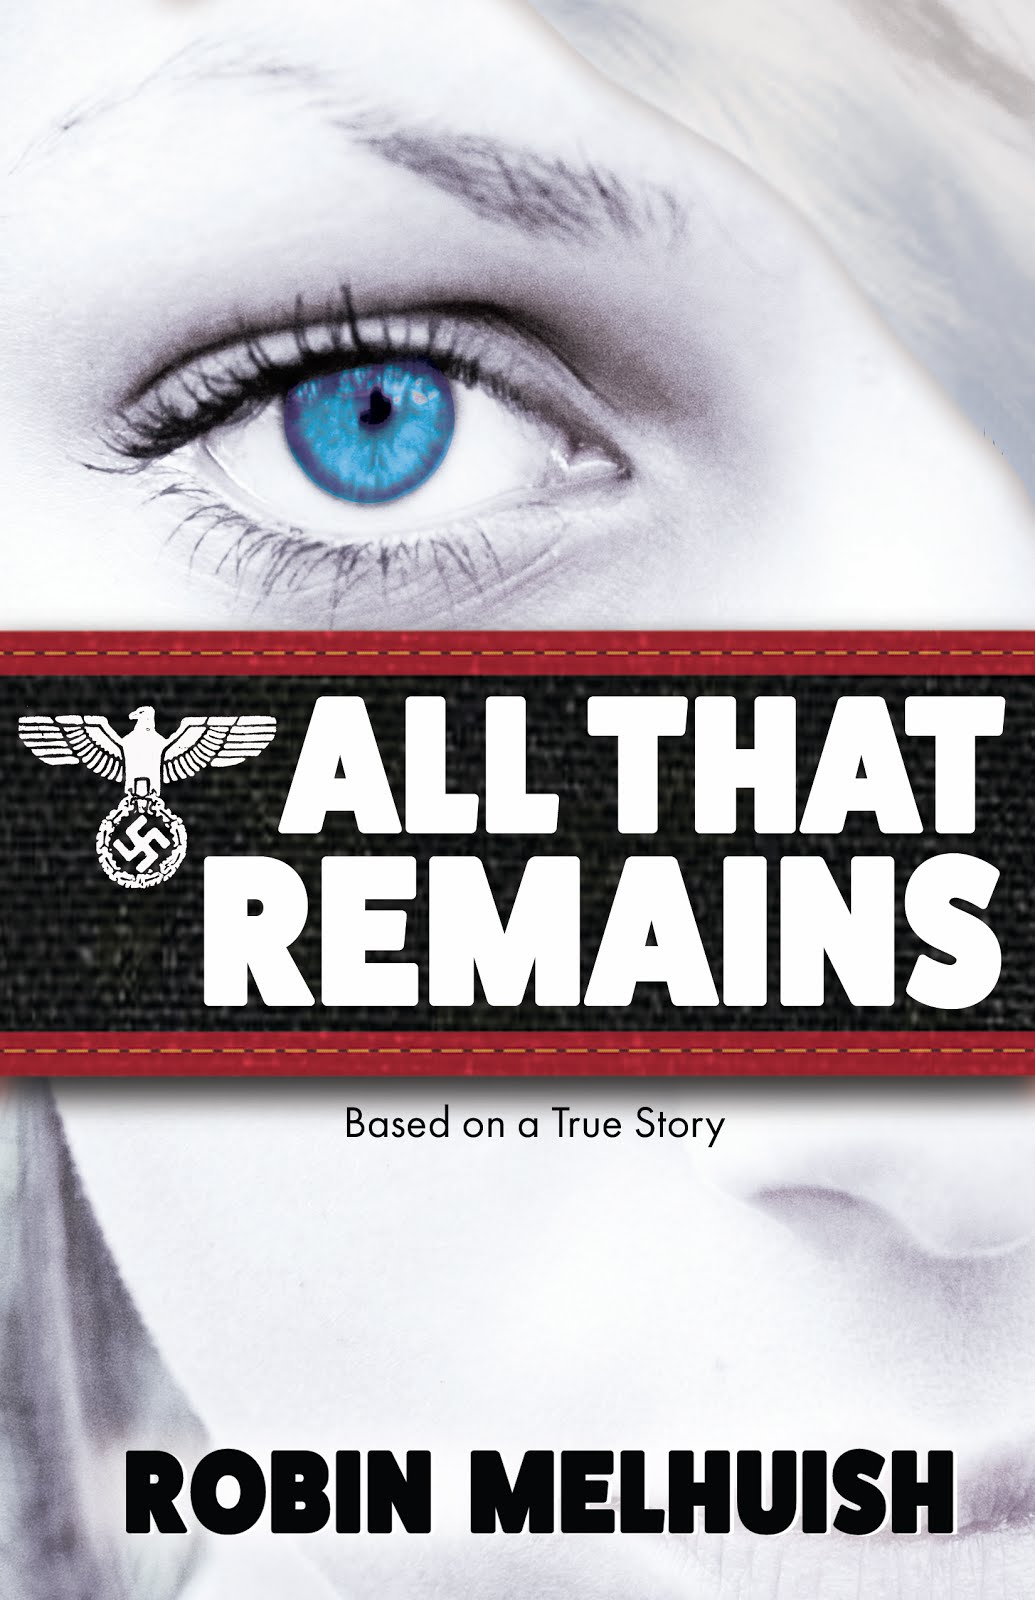 All That Remains by Robin Melhuish